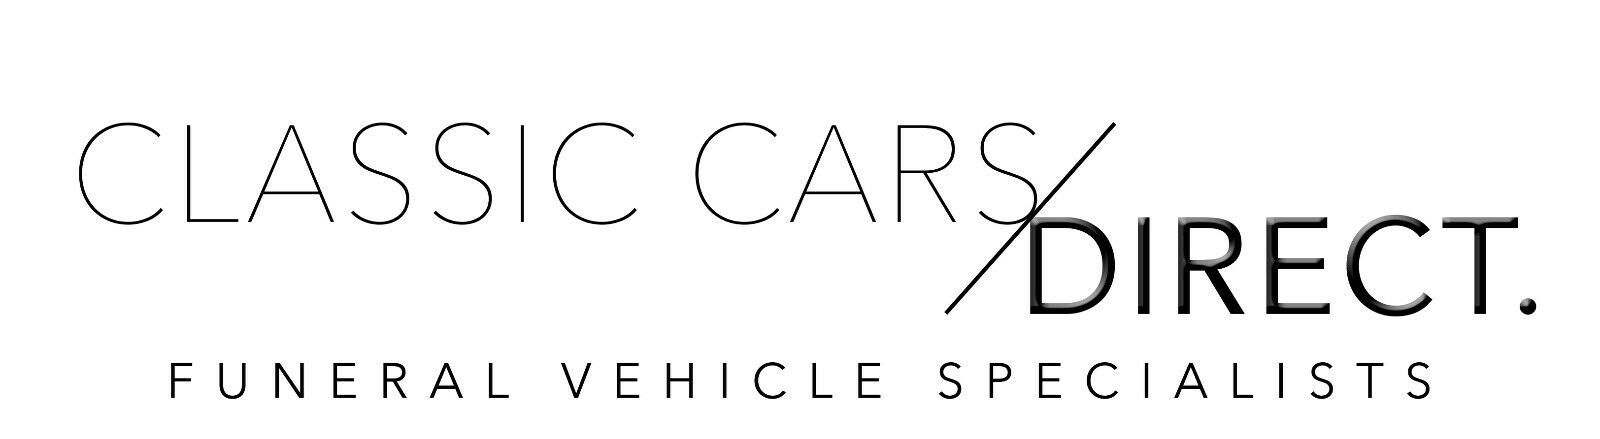 Read Classic Cars Direct Reviews